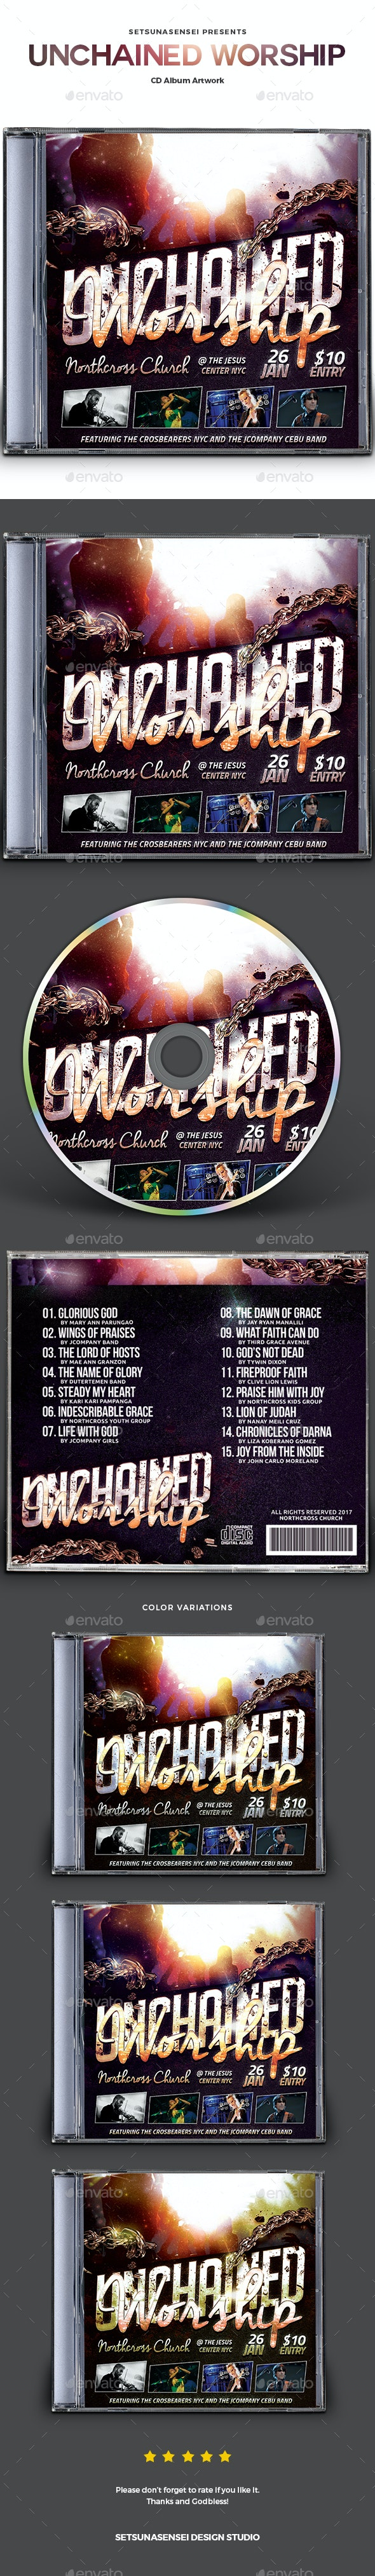 Unchained Worship CD Album Artwork - CD & DVD Artwork Print Templates